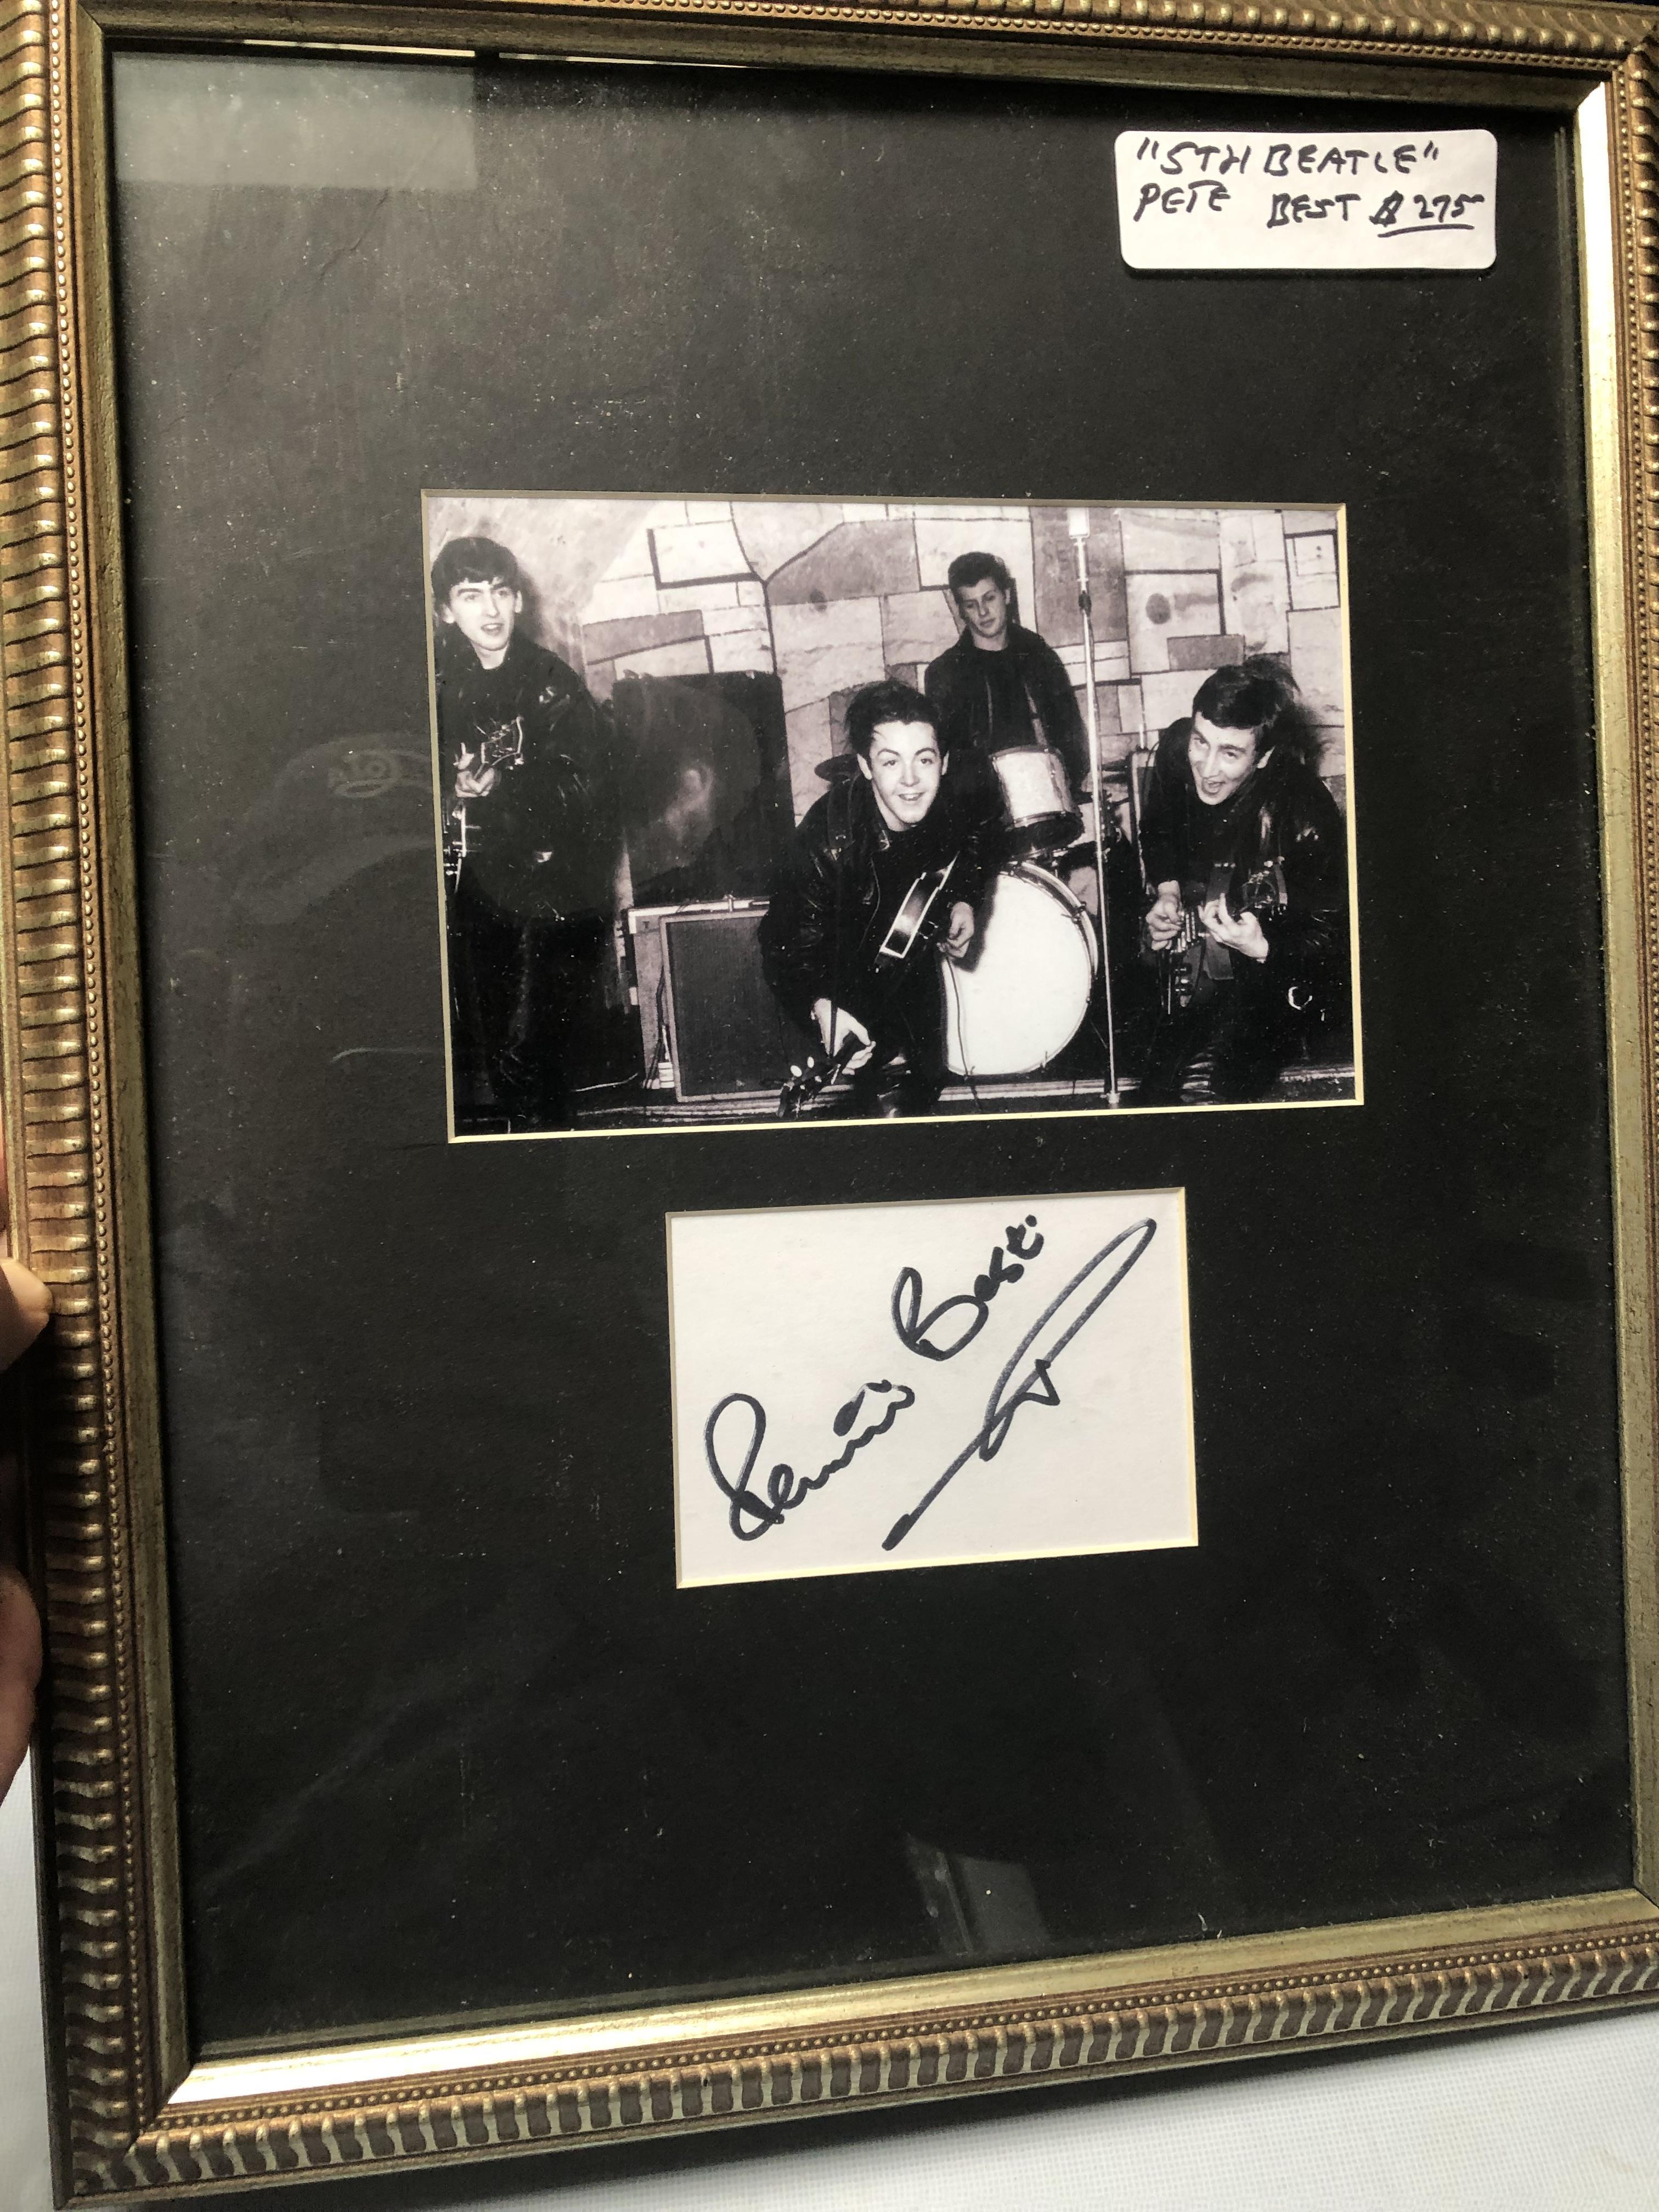 Pete Best - The 5th Beatle Framed with certificate of authenticity